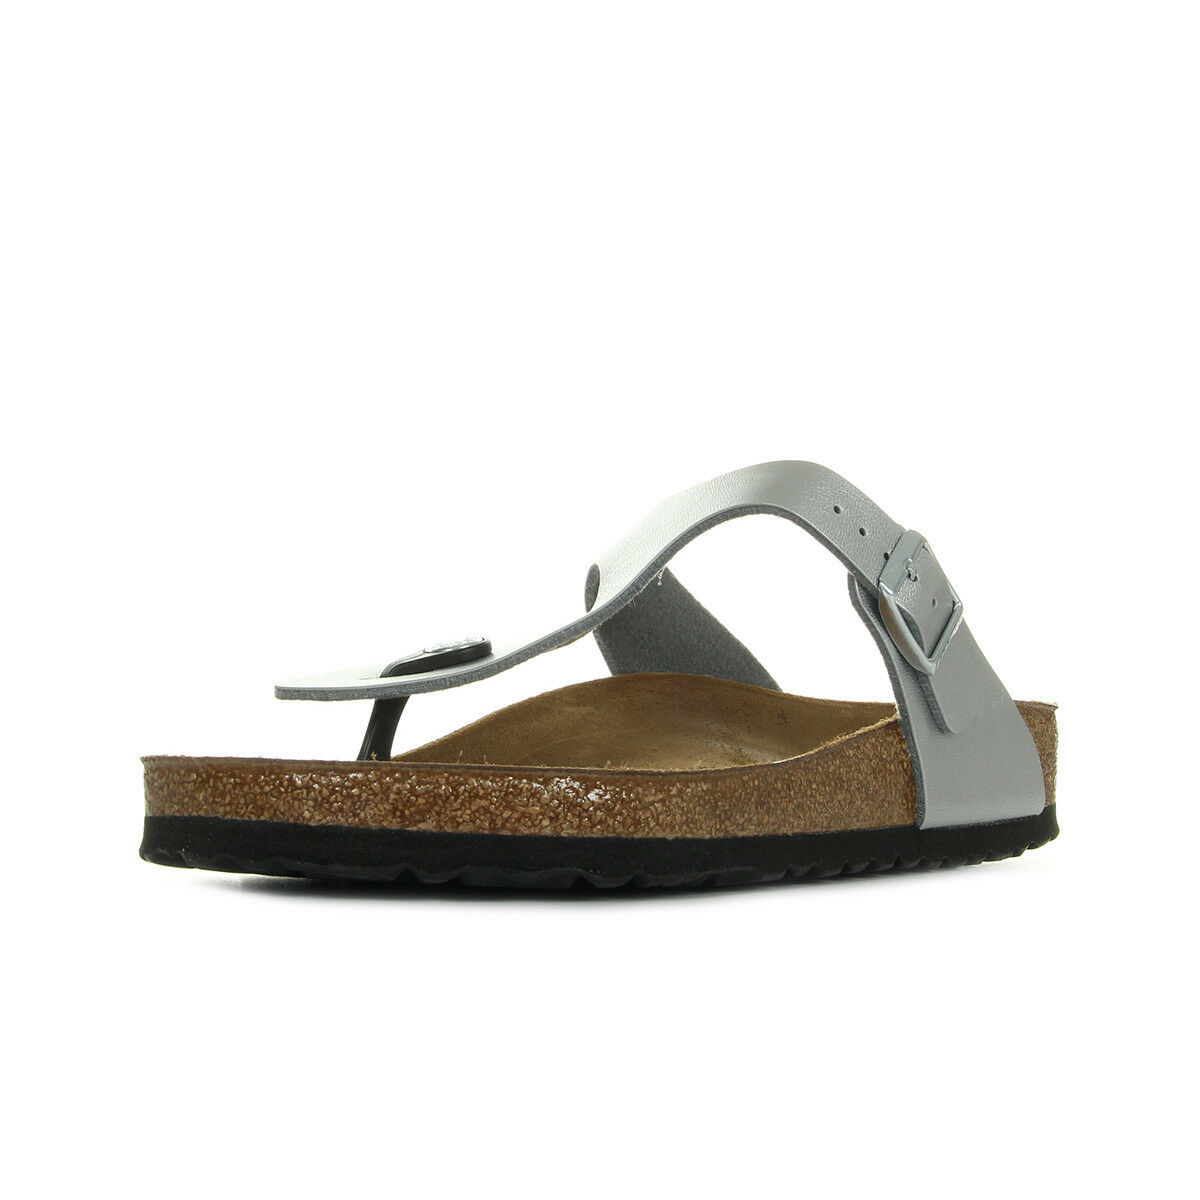 Tongs Birkenstock Synthétique femme Gizeh taille Argent Synthétique Birkenstock A boucles b0b05f